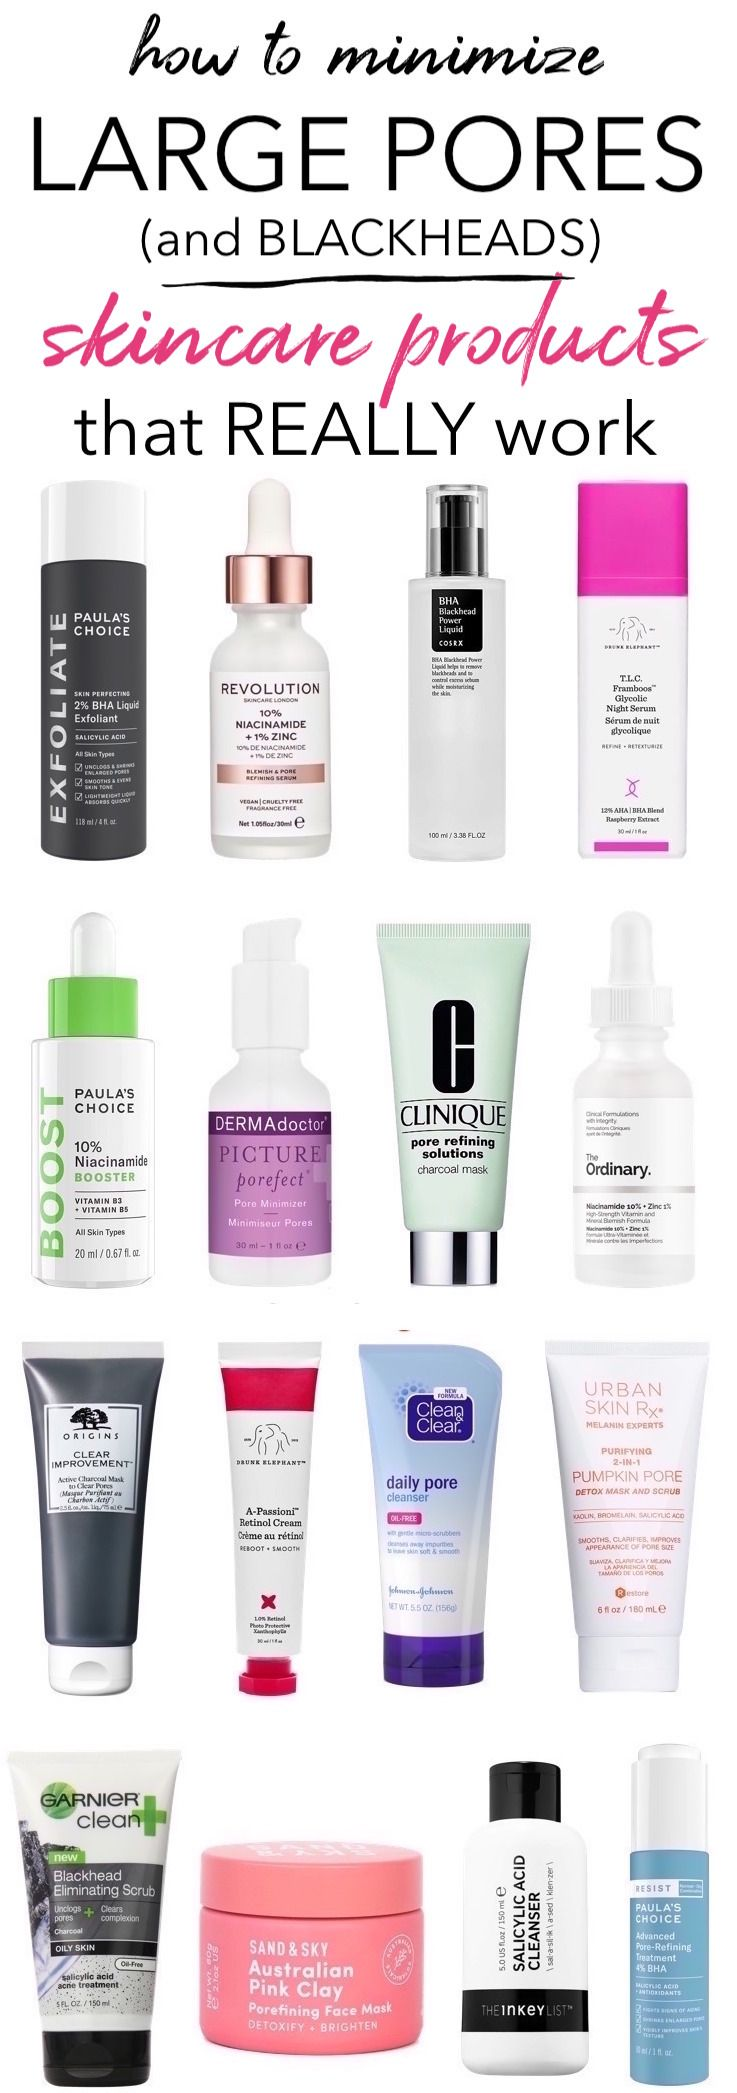 Pore Problems These Skincare Products Really Work To Reduce Large Pores And Blackheads In 2020 Skin Care Treatments Large Pores Skin Care